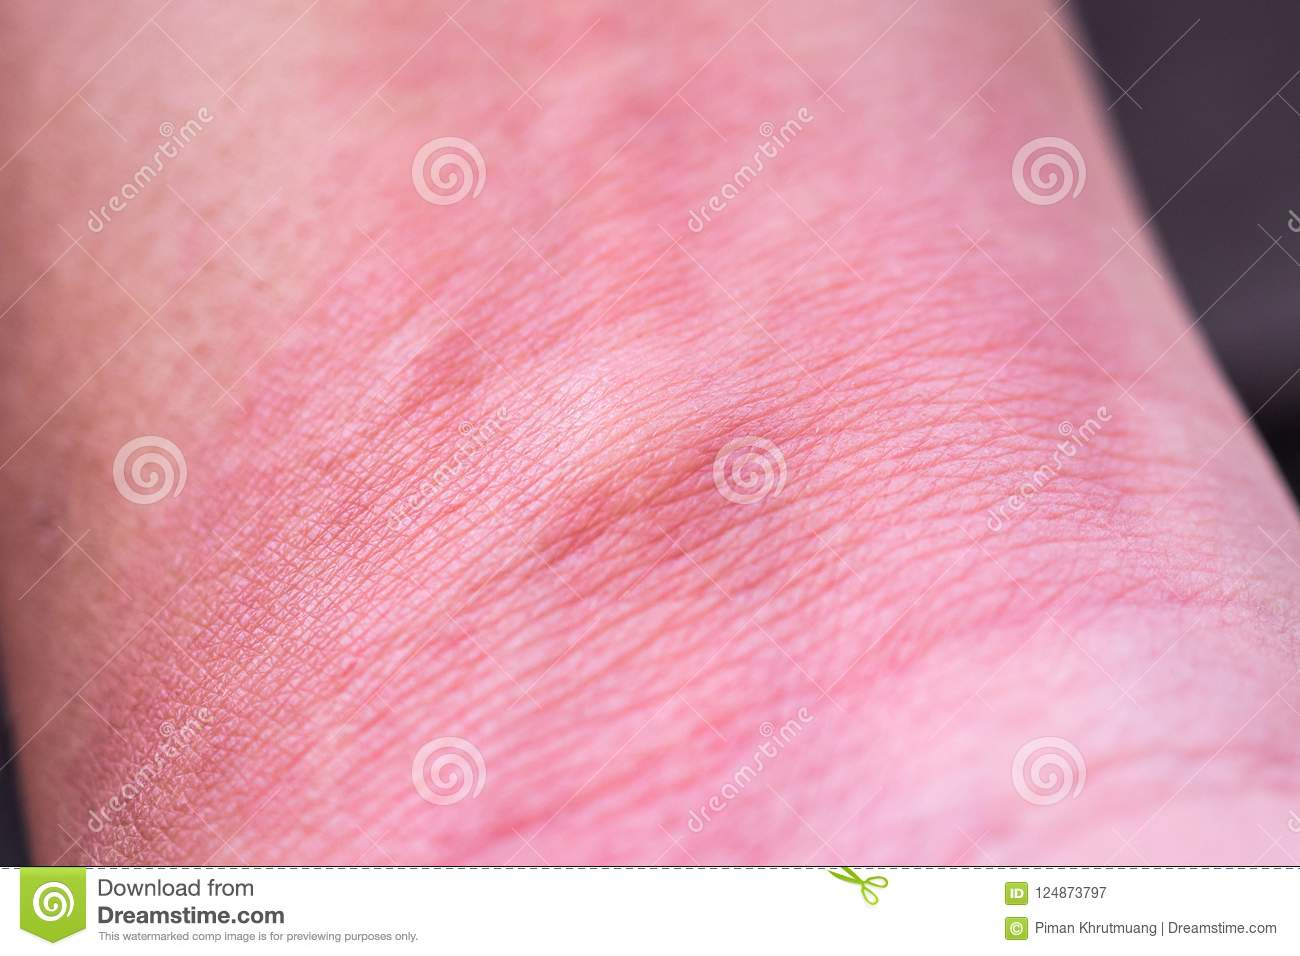 Skin Allergy With Rash After Mosquito Bite Stock Image Image Of